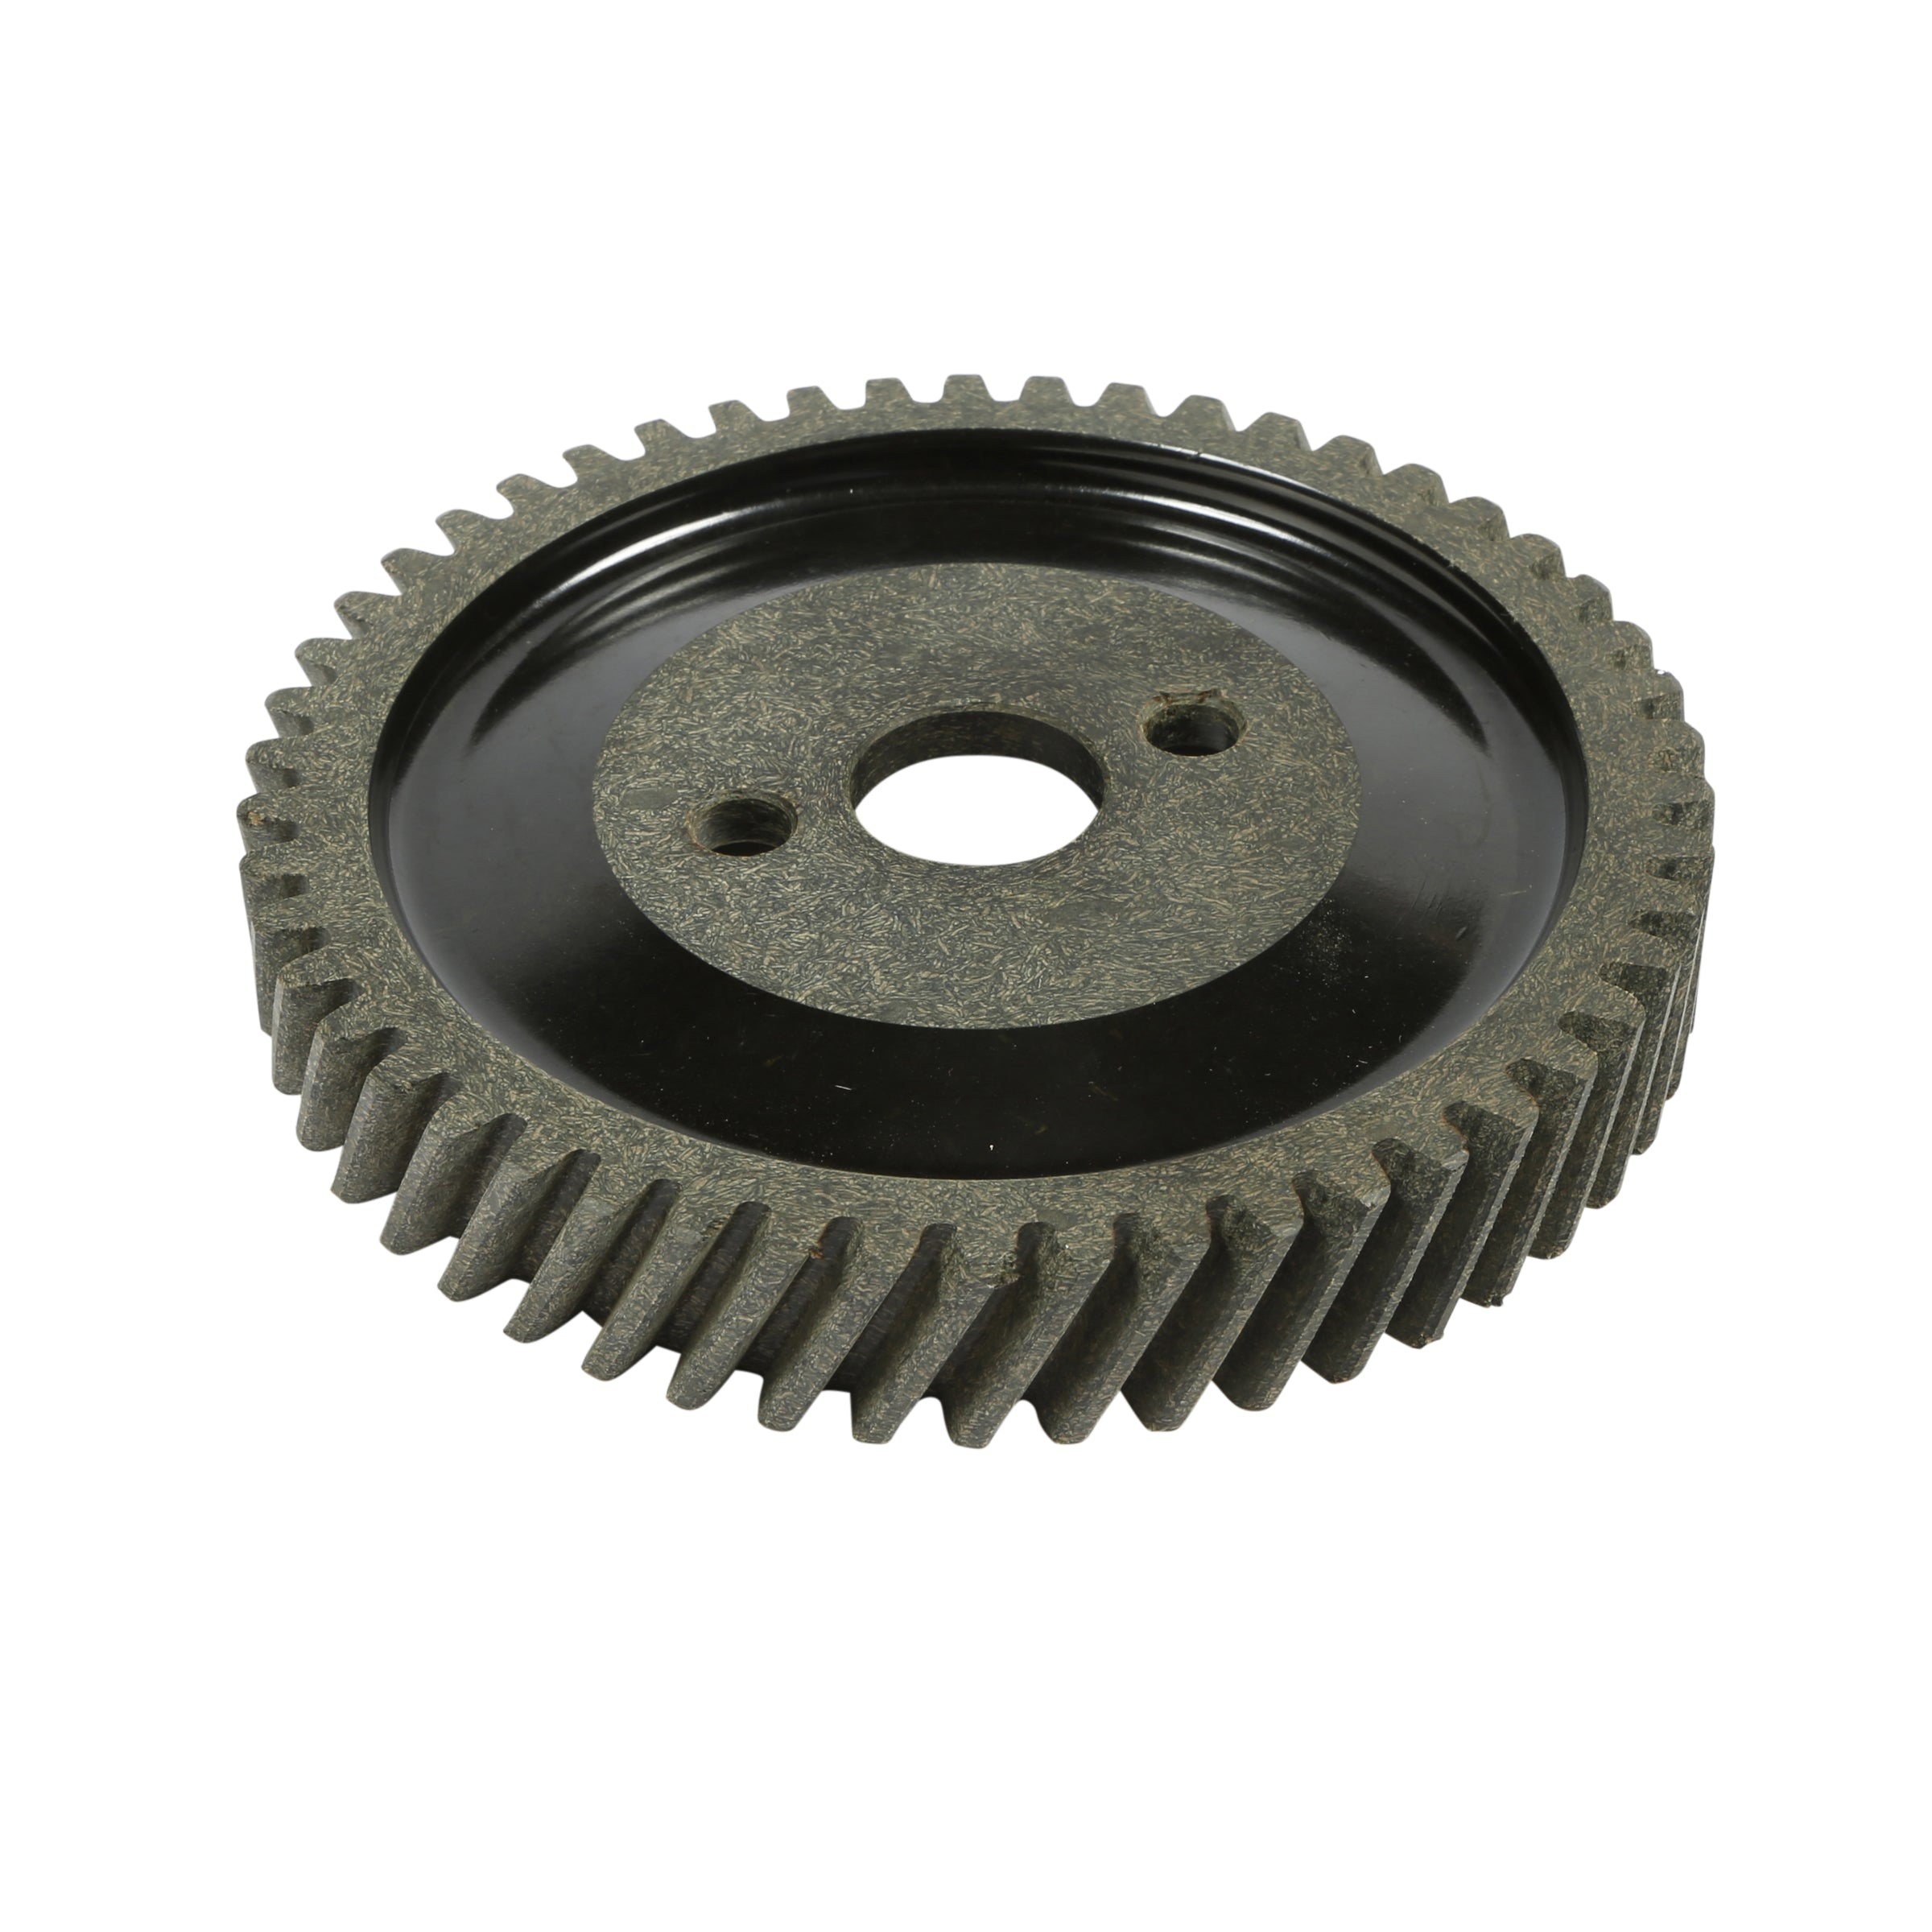 Timing Gear • 1928-34 Laminated Fiber